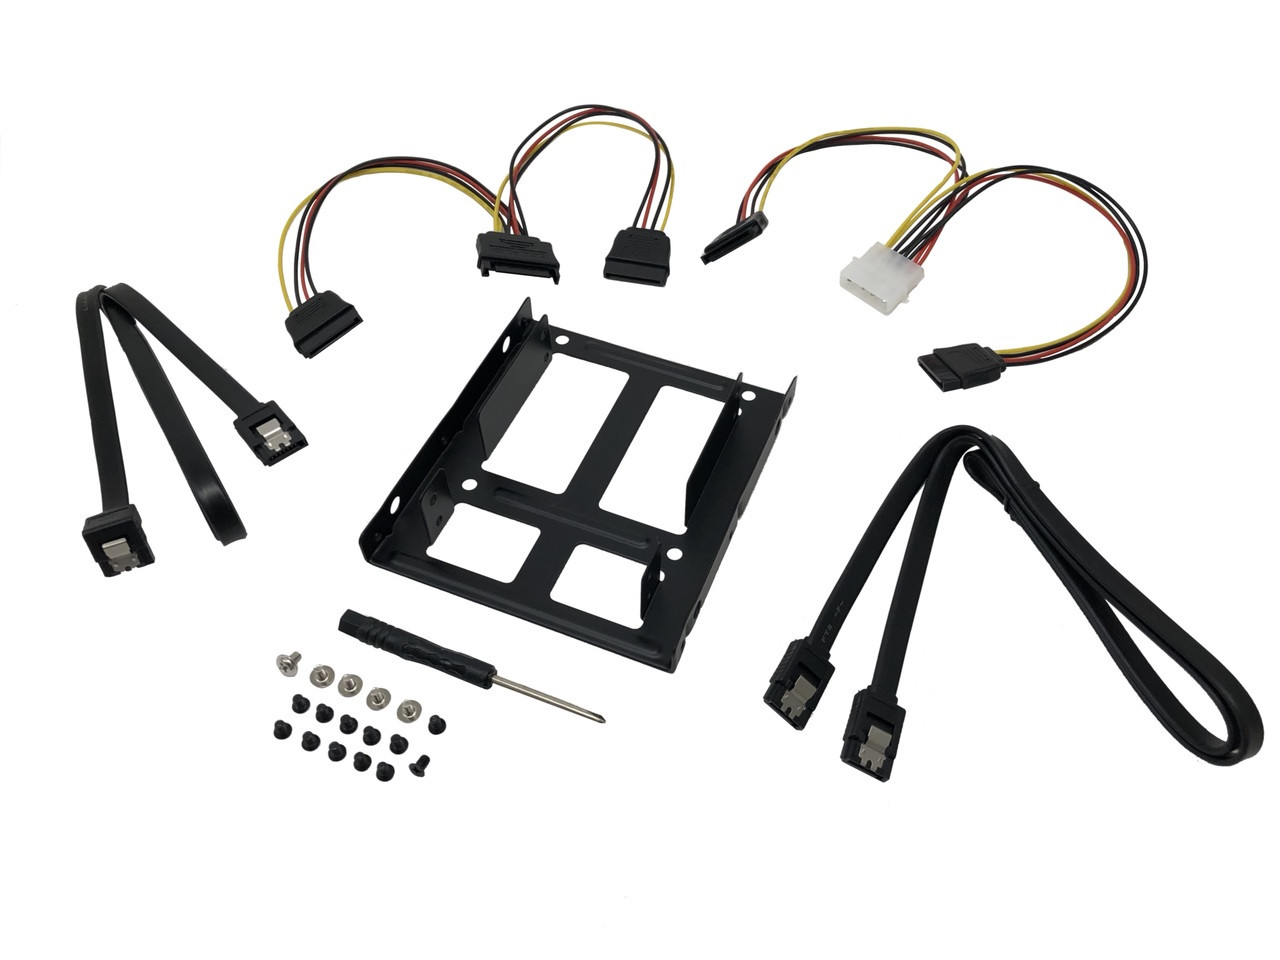 "2.5"" SSD/Hard Drive Installation Kit For Two (2) 2.5"" SSD/HDD to 3.5"" Drive Bay with SATA Data and Power Cables"